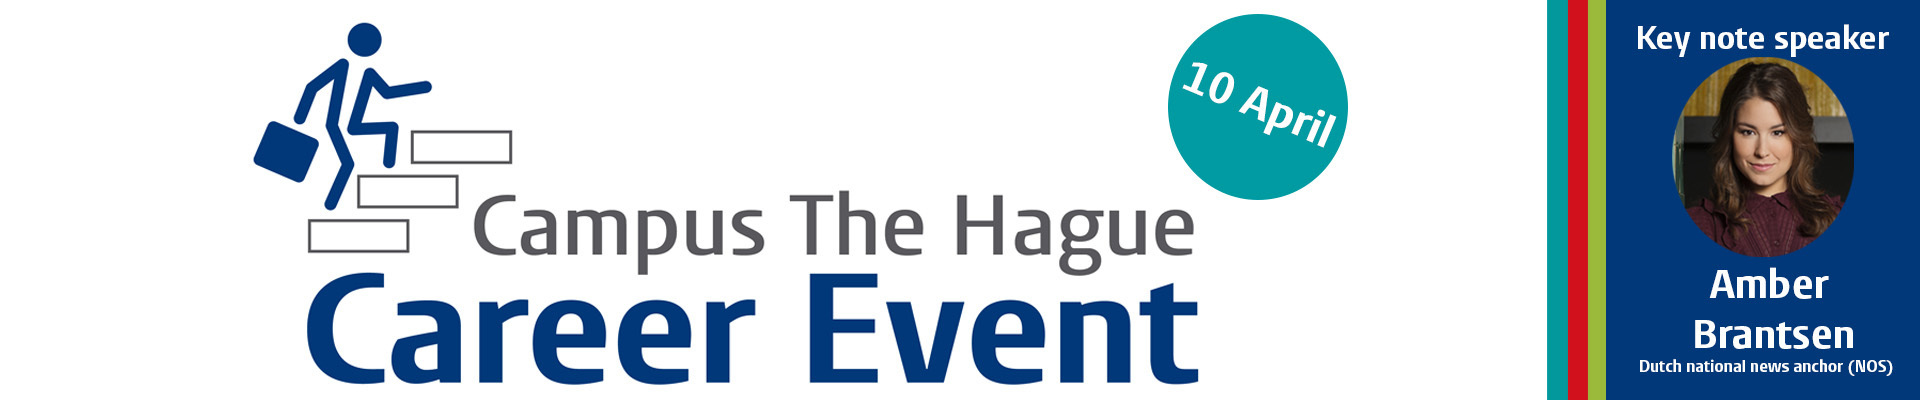 Campus The Hague Career Event 2019